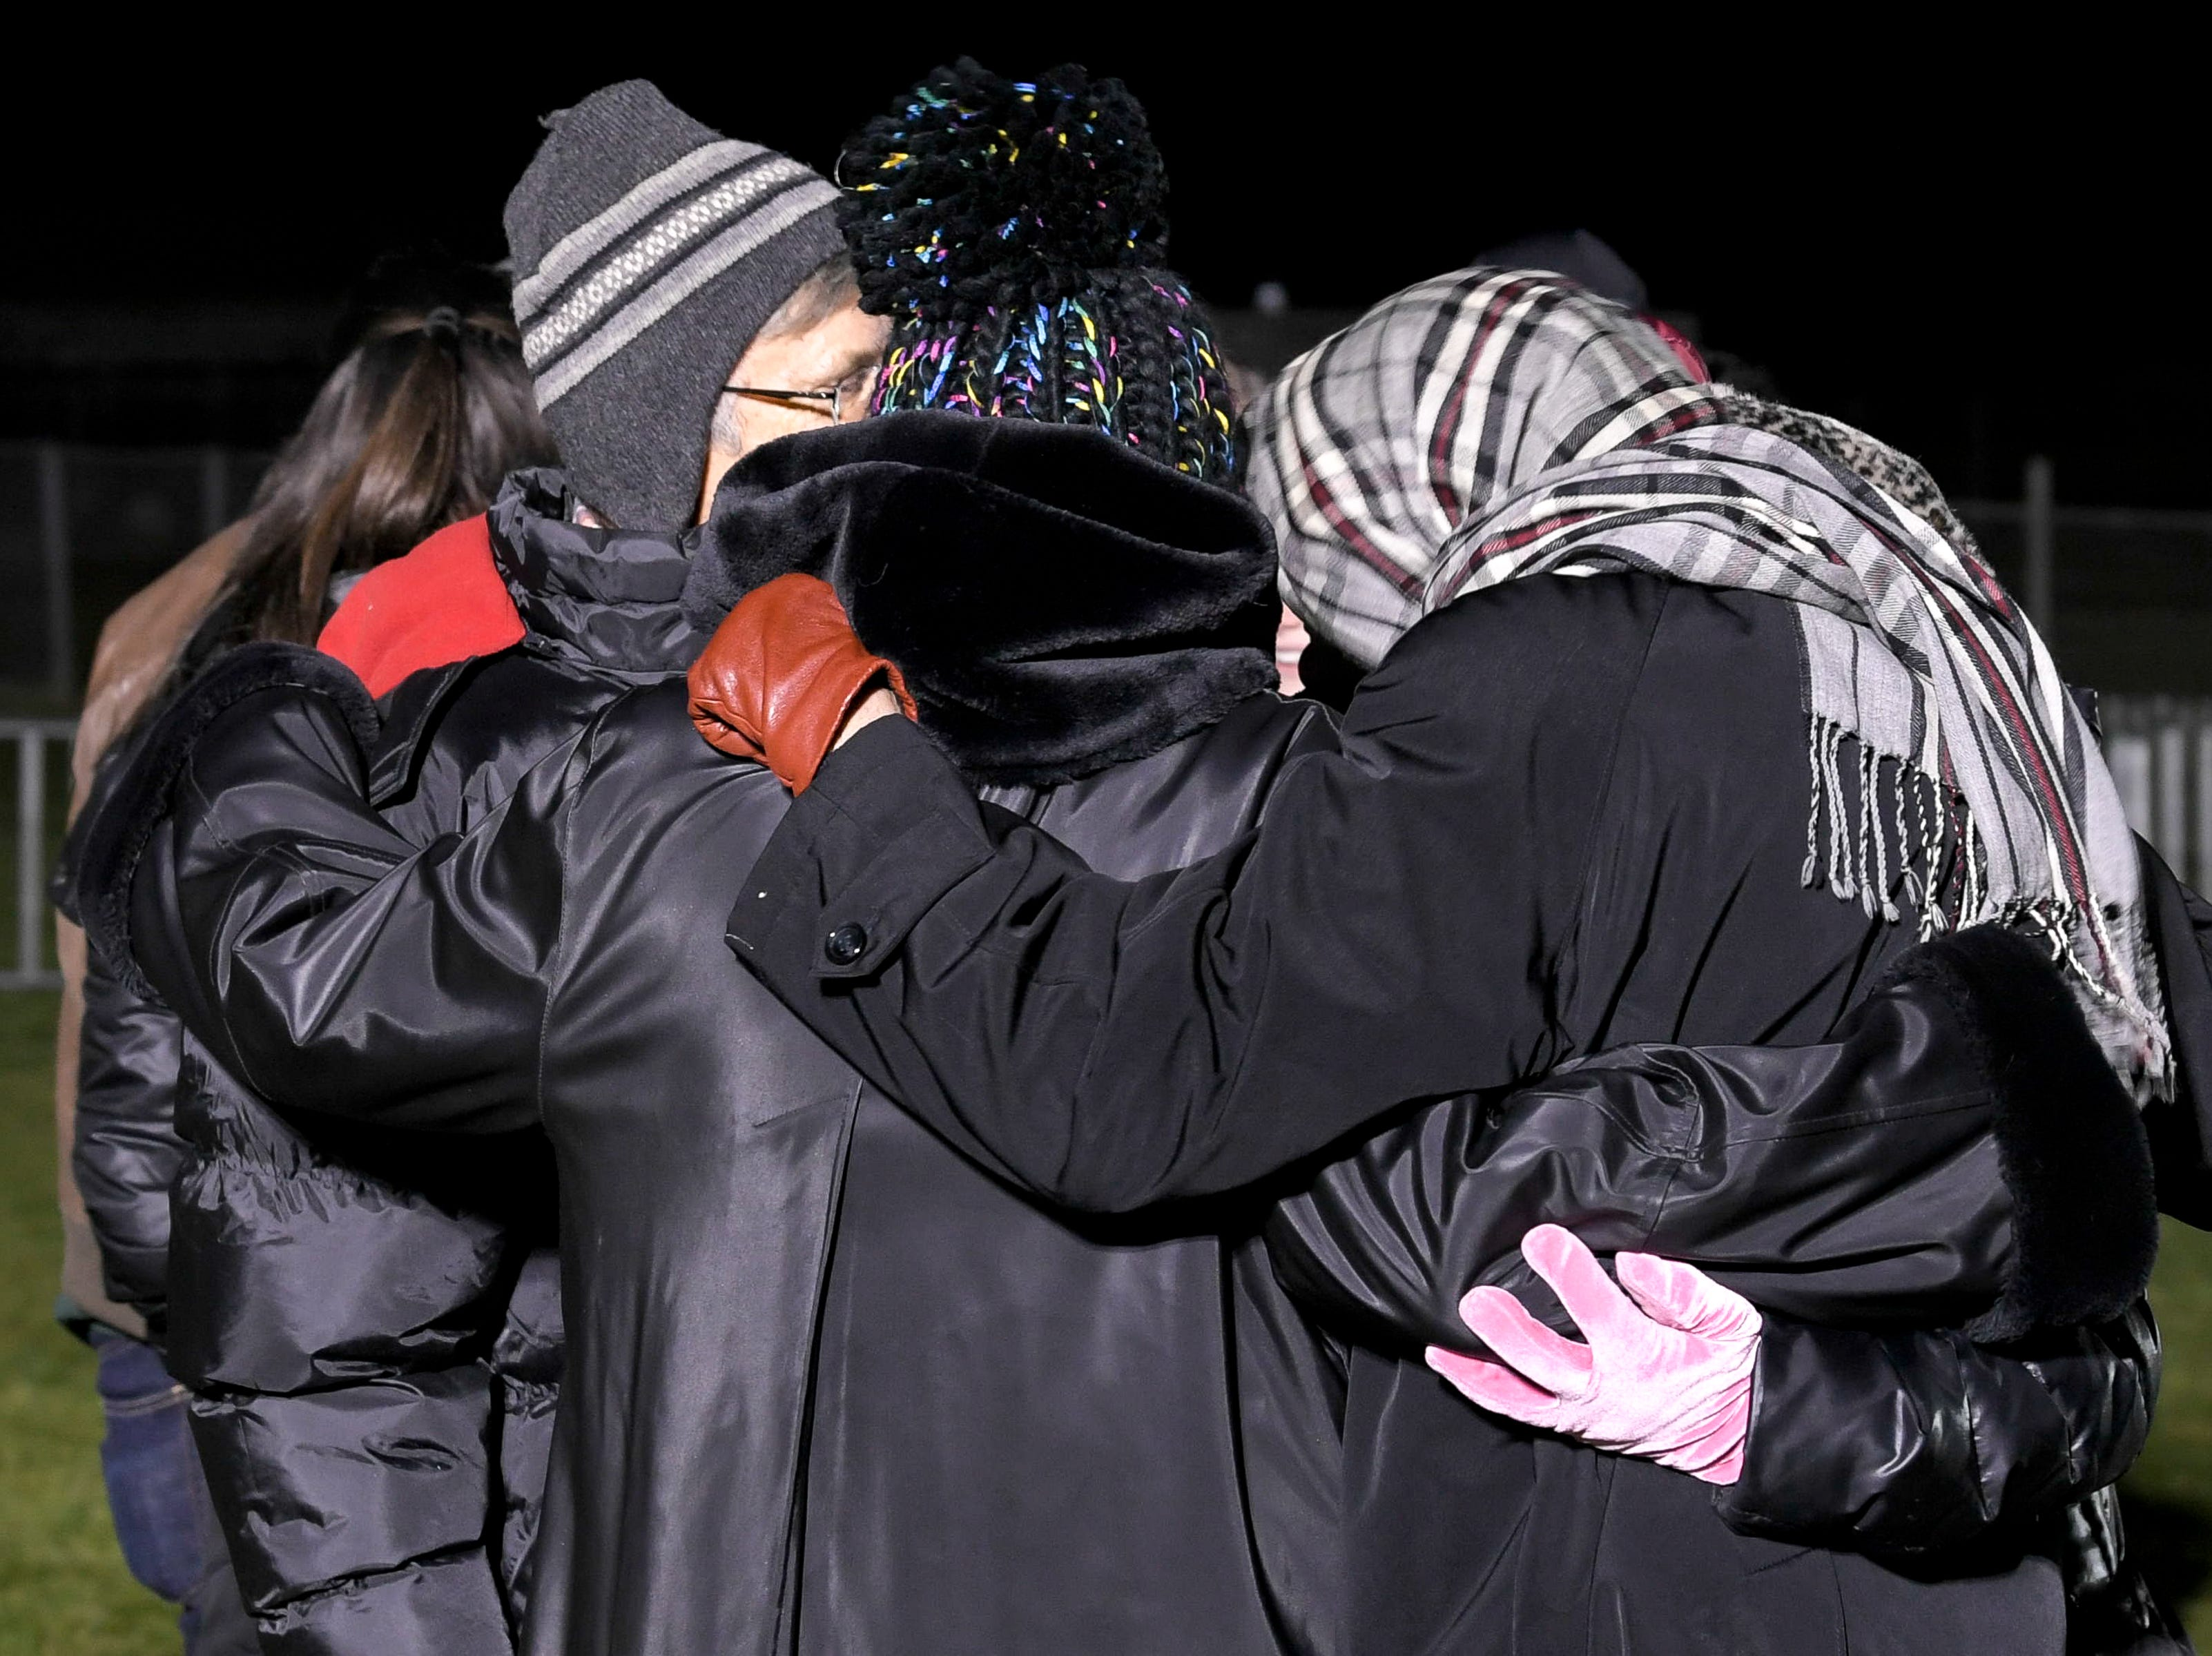 Protesters against the death penalty hug in a field outside Riverbend Maximum Security Institution after the execution of Tennessee death row inmate David Earl Miller on Thursday, Dec. 6, 2018 in Nashville, Tenn. Miller was sentenced to death for the 1981 murder of Lee Standifer, 23, in Knoxville.